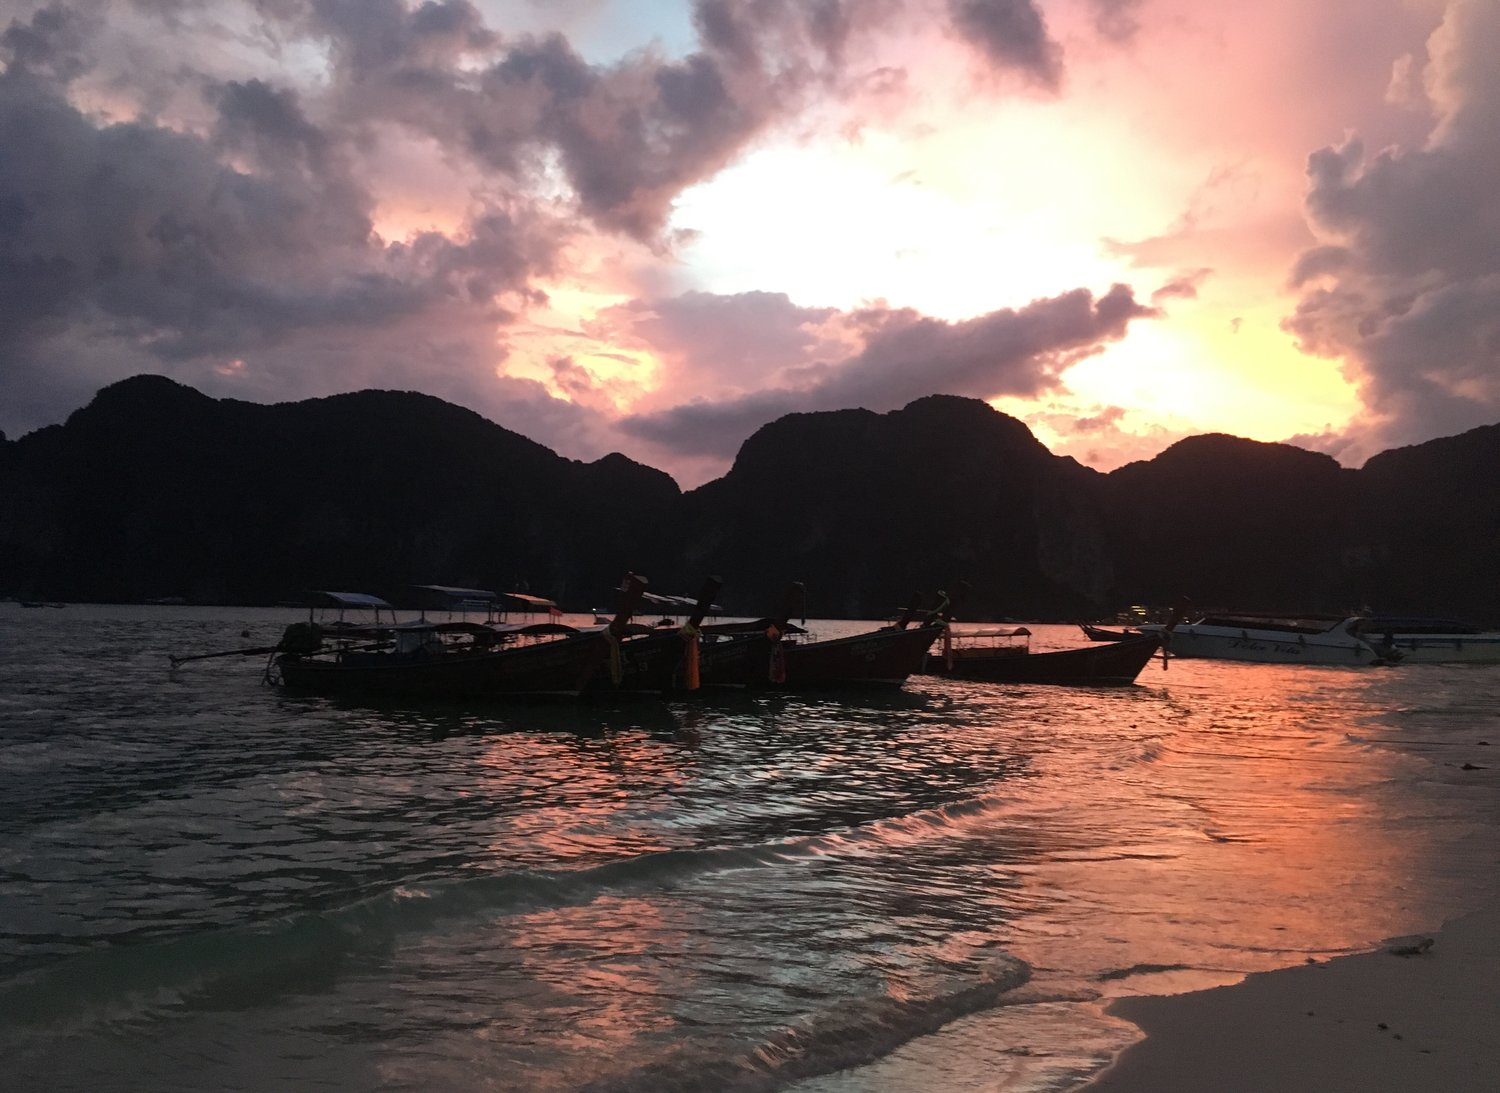 sunset in Southeast Asia